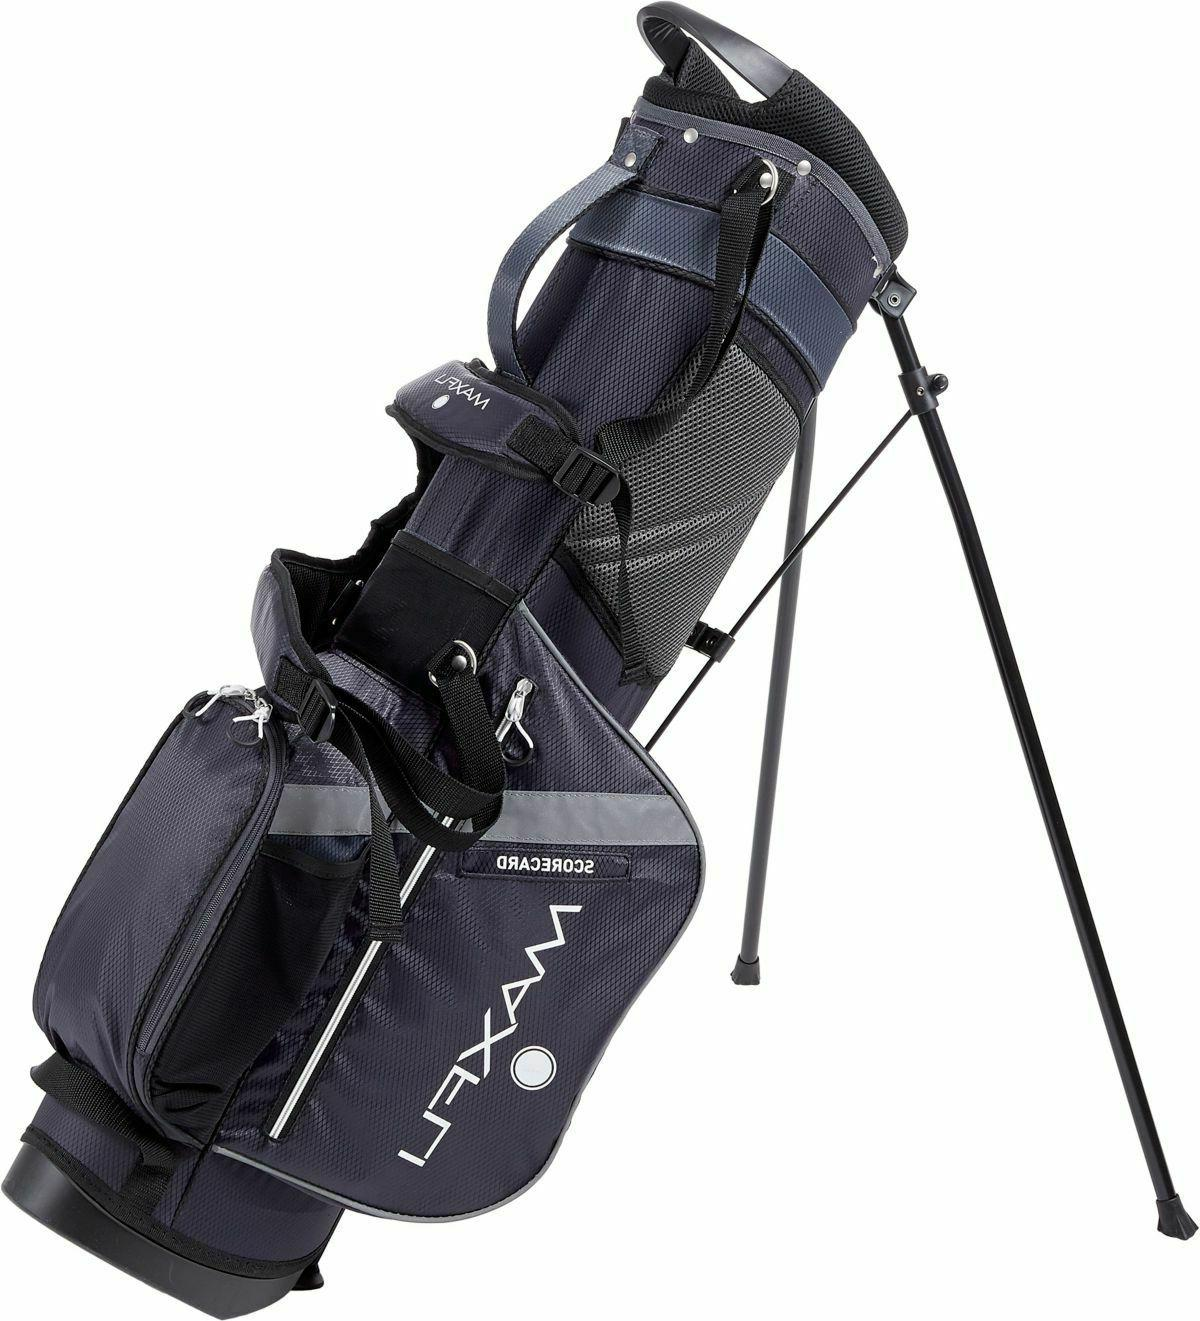 New Golf Bag Divider Carry Straps Black